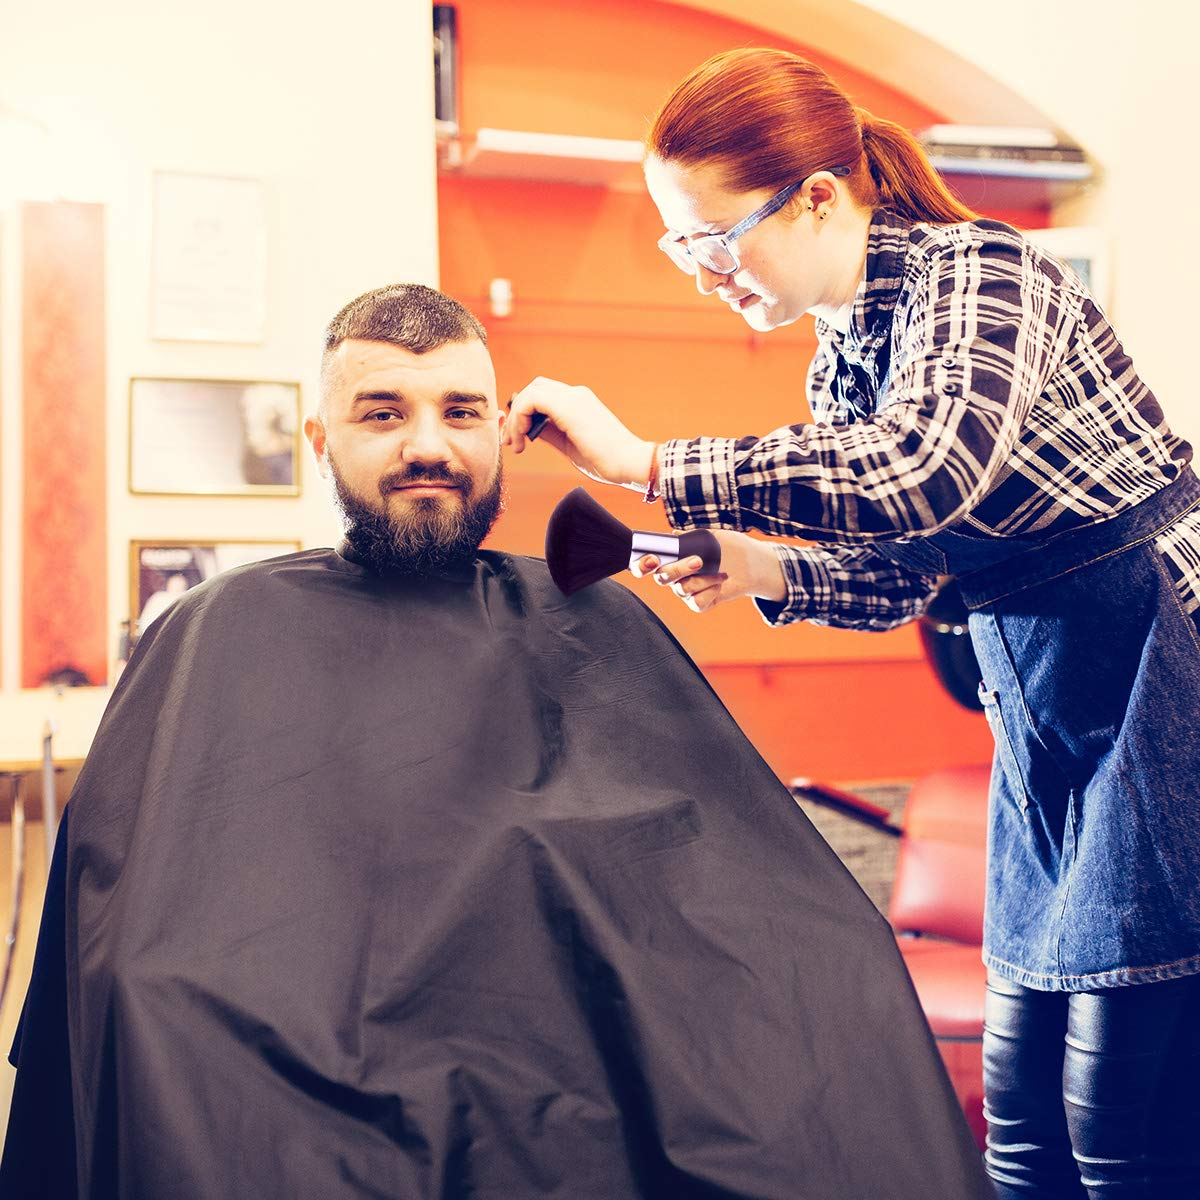 Professional Barber Cape with Snap Closure, Hair Cutting Salon Cape Hairstylist Cape, Neck Duster Brush Included